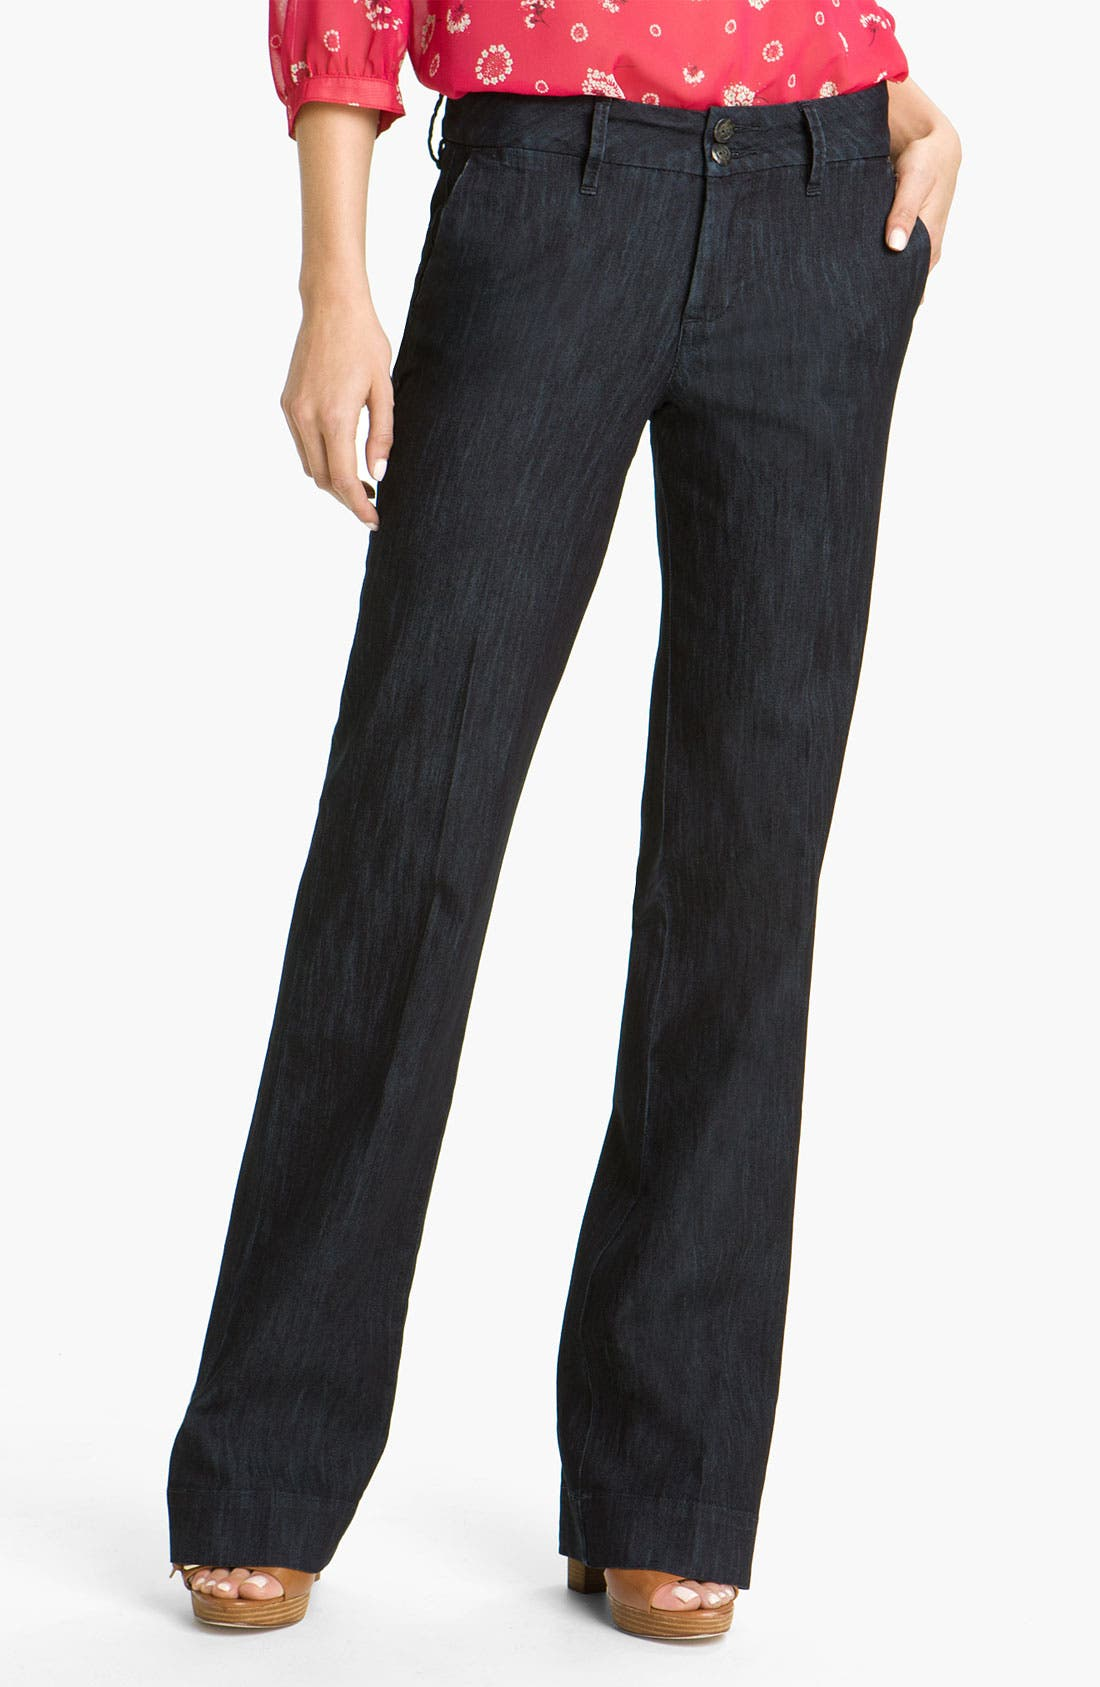 Alternate Image 1 Selected - Jag Jeans 'Pearl' Trouser Jeans (Dark Storm Wash)